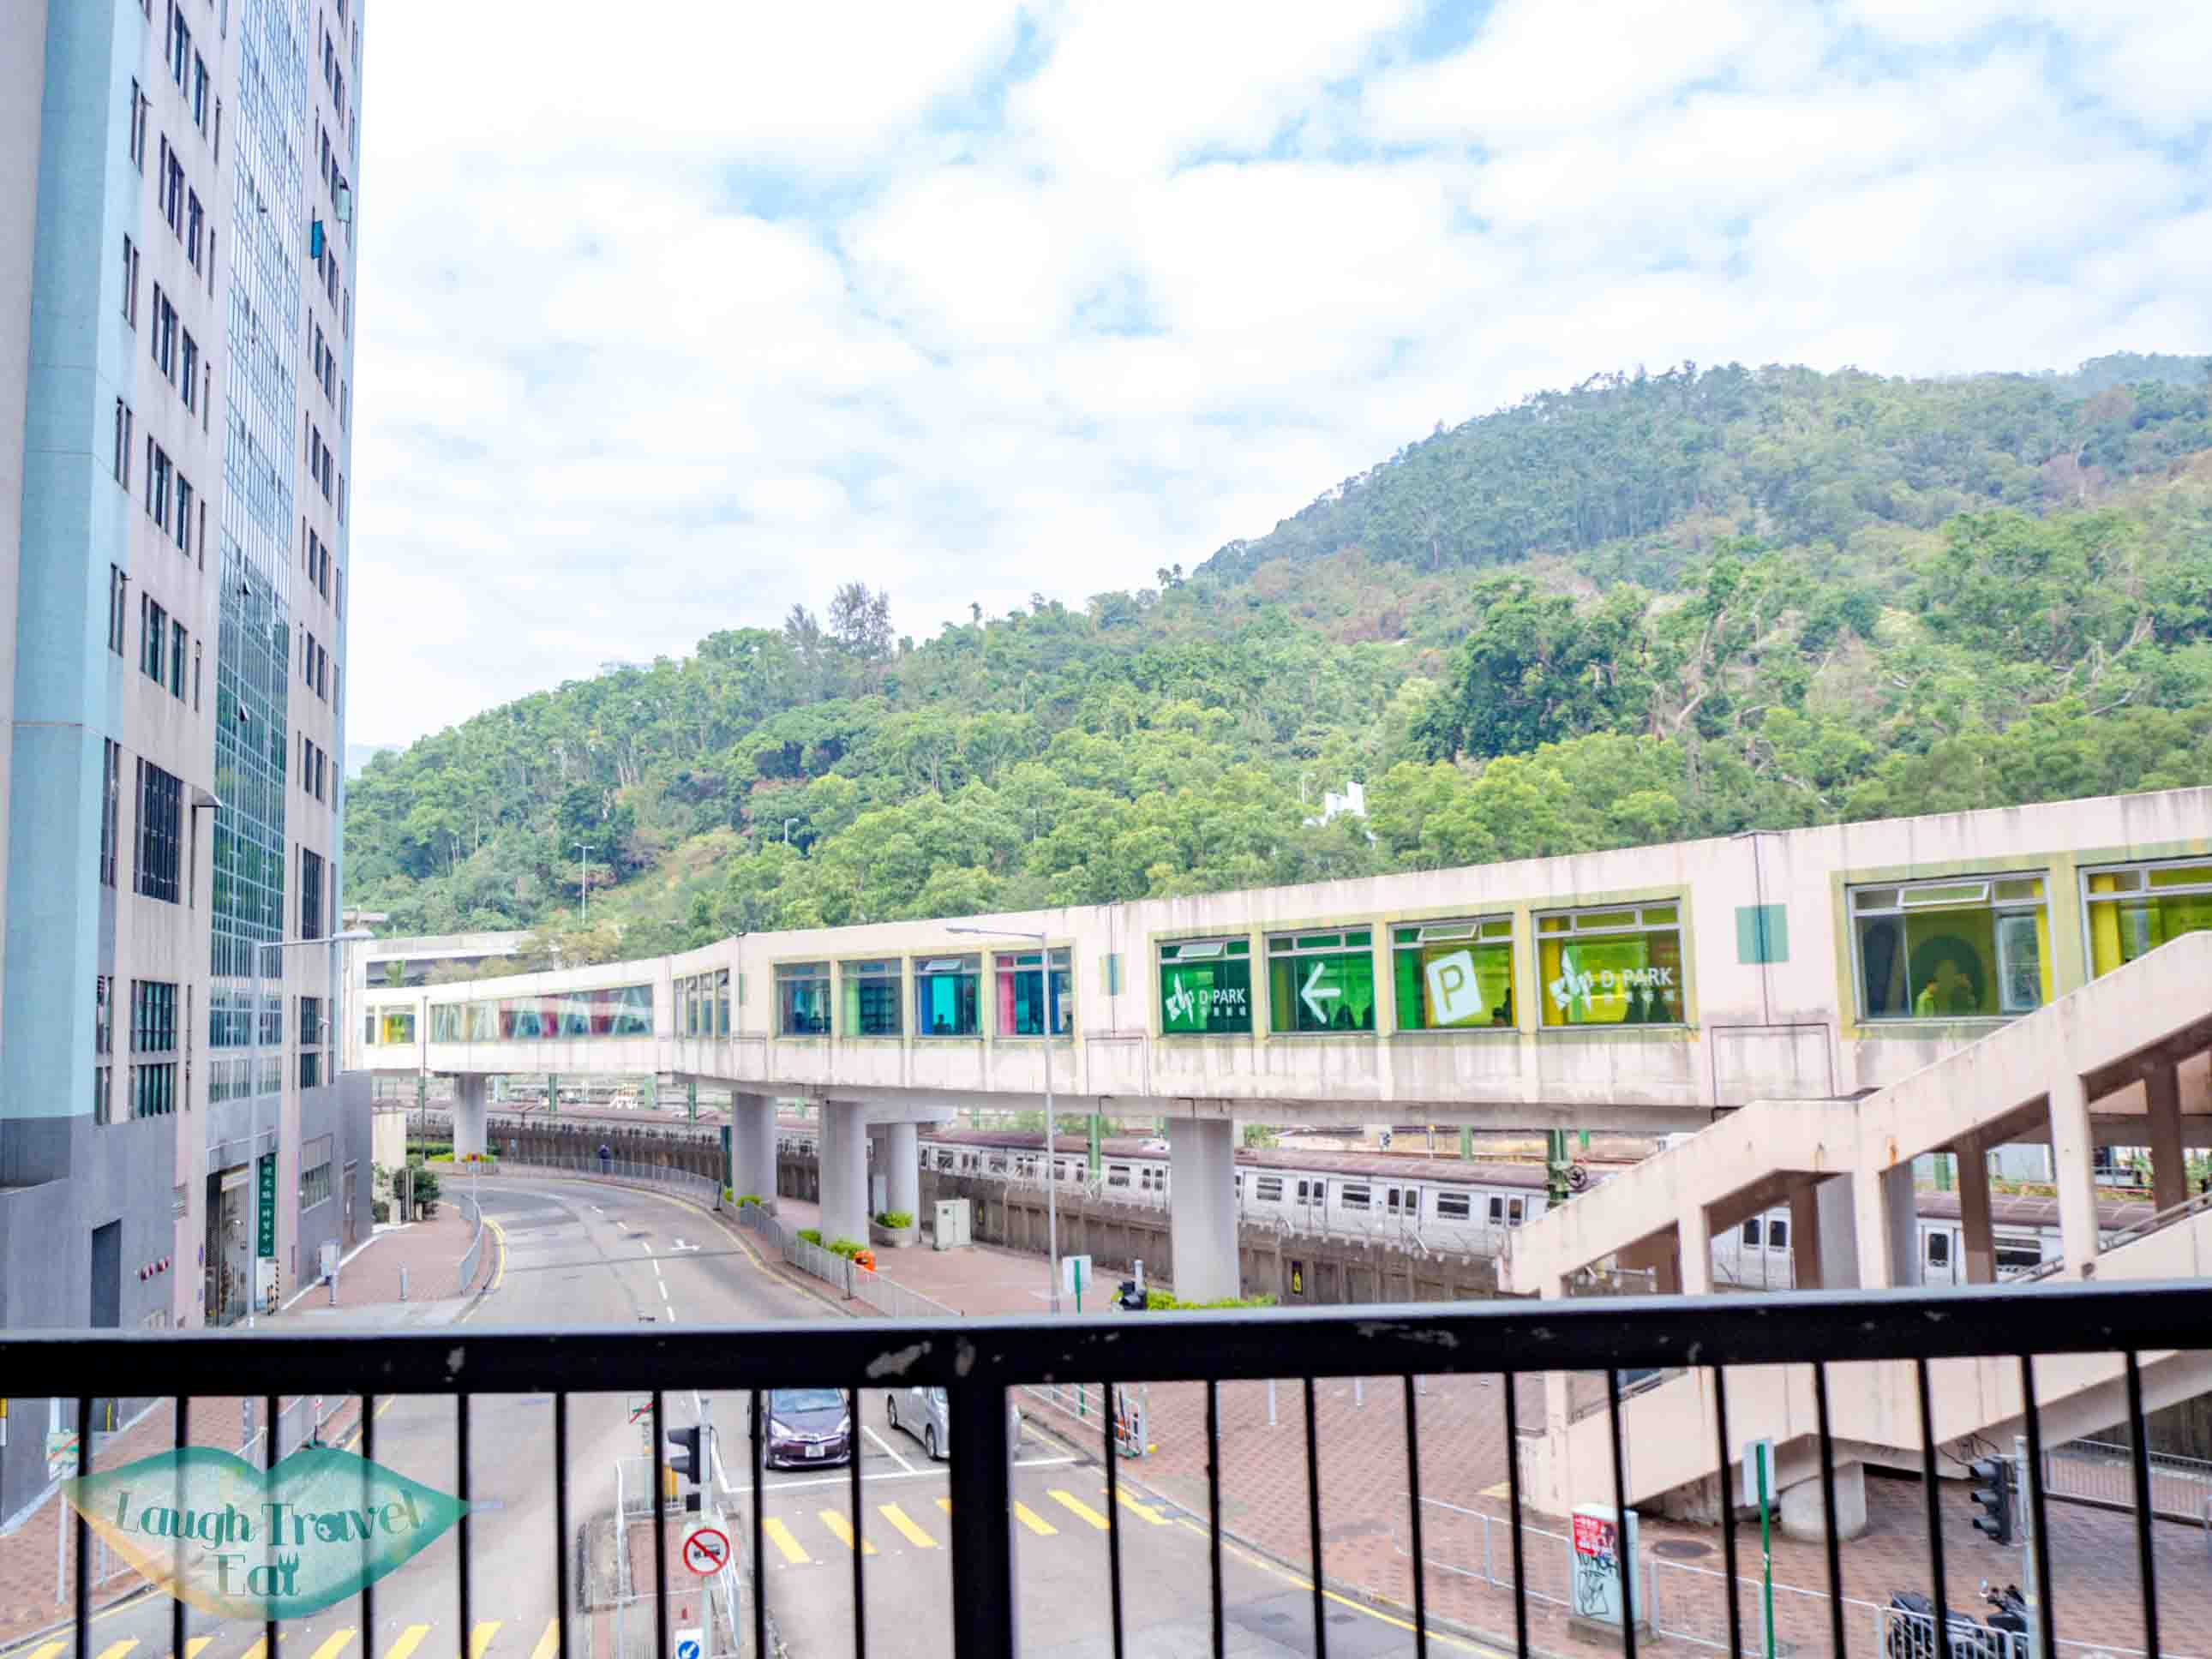 exit-to-discovery-park-pedestrian-bridge-wo-yang-shan-hong-kong-laugh-travel-eat